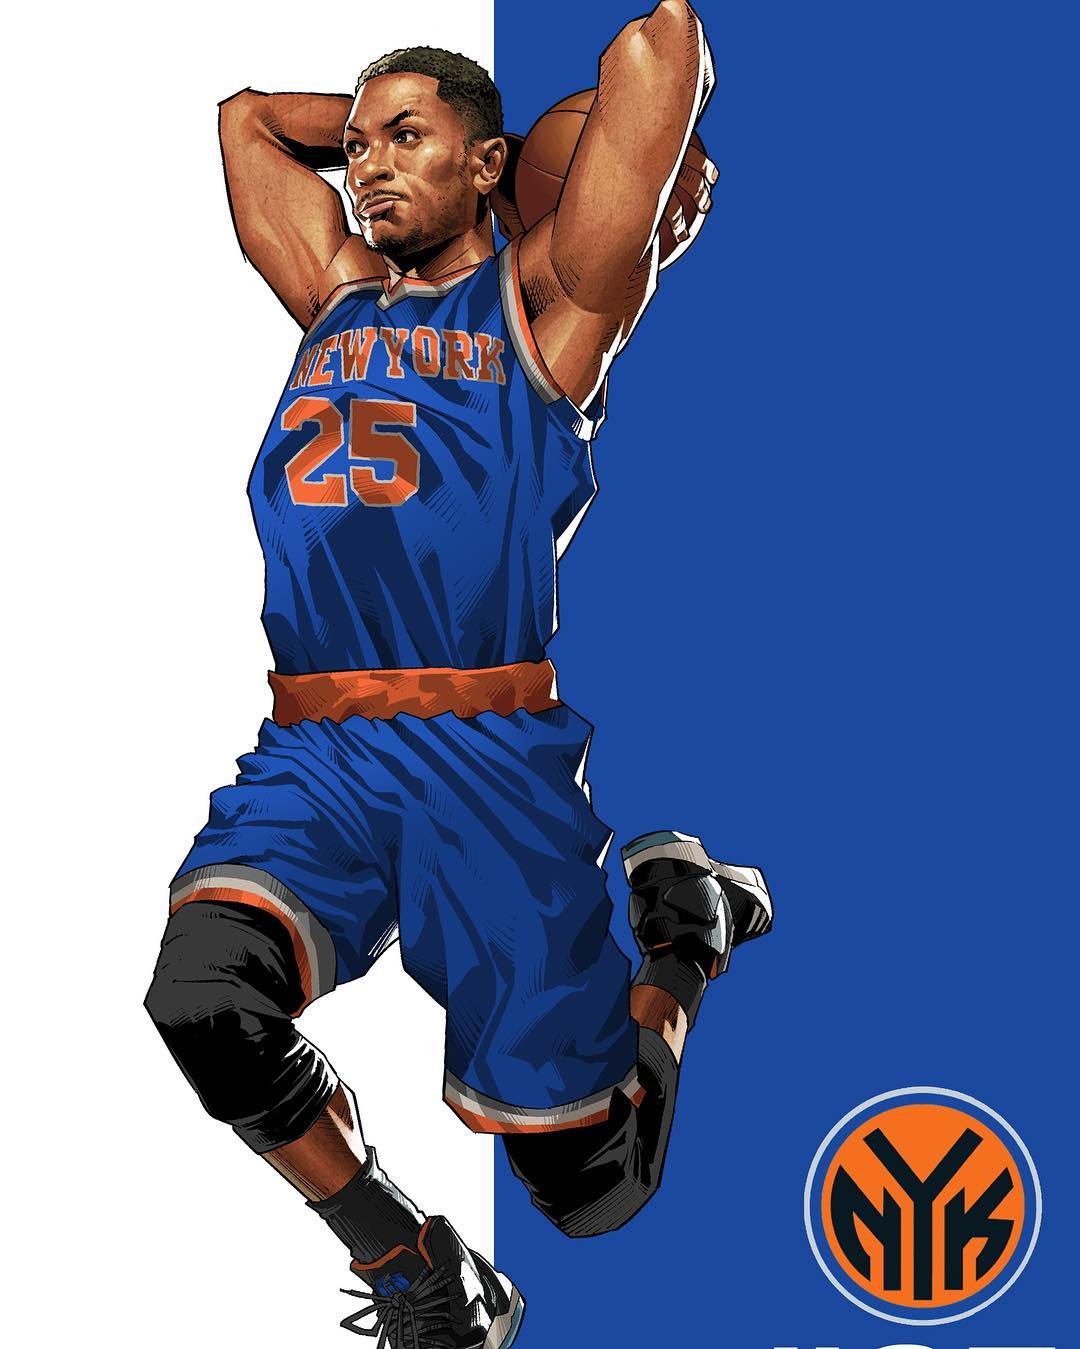 Derrick Rose Take Flight Illustration